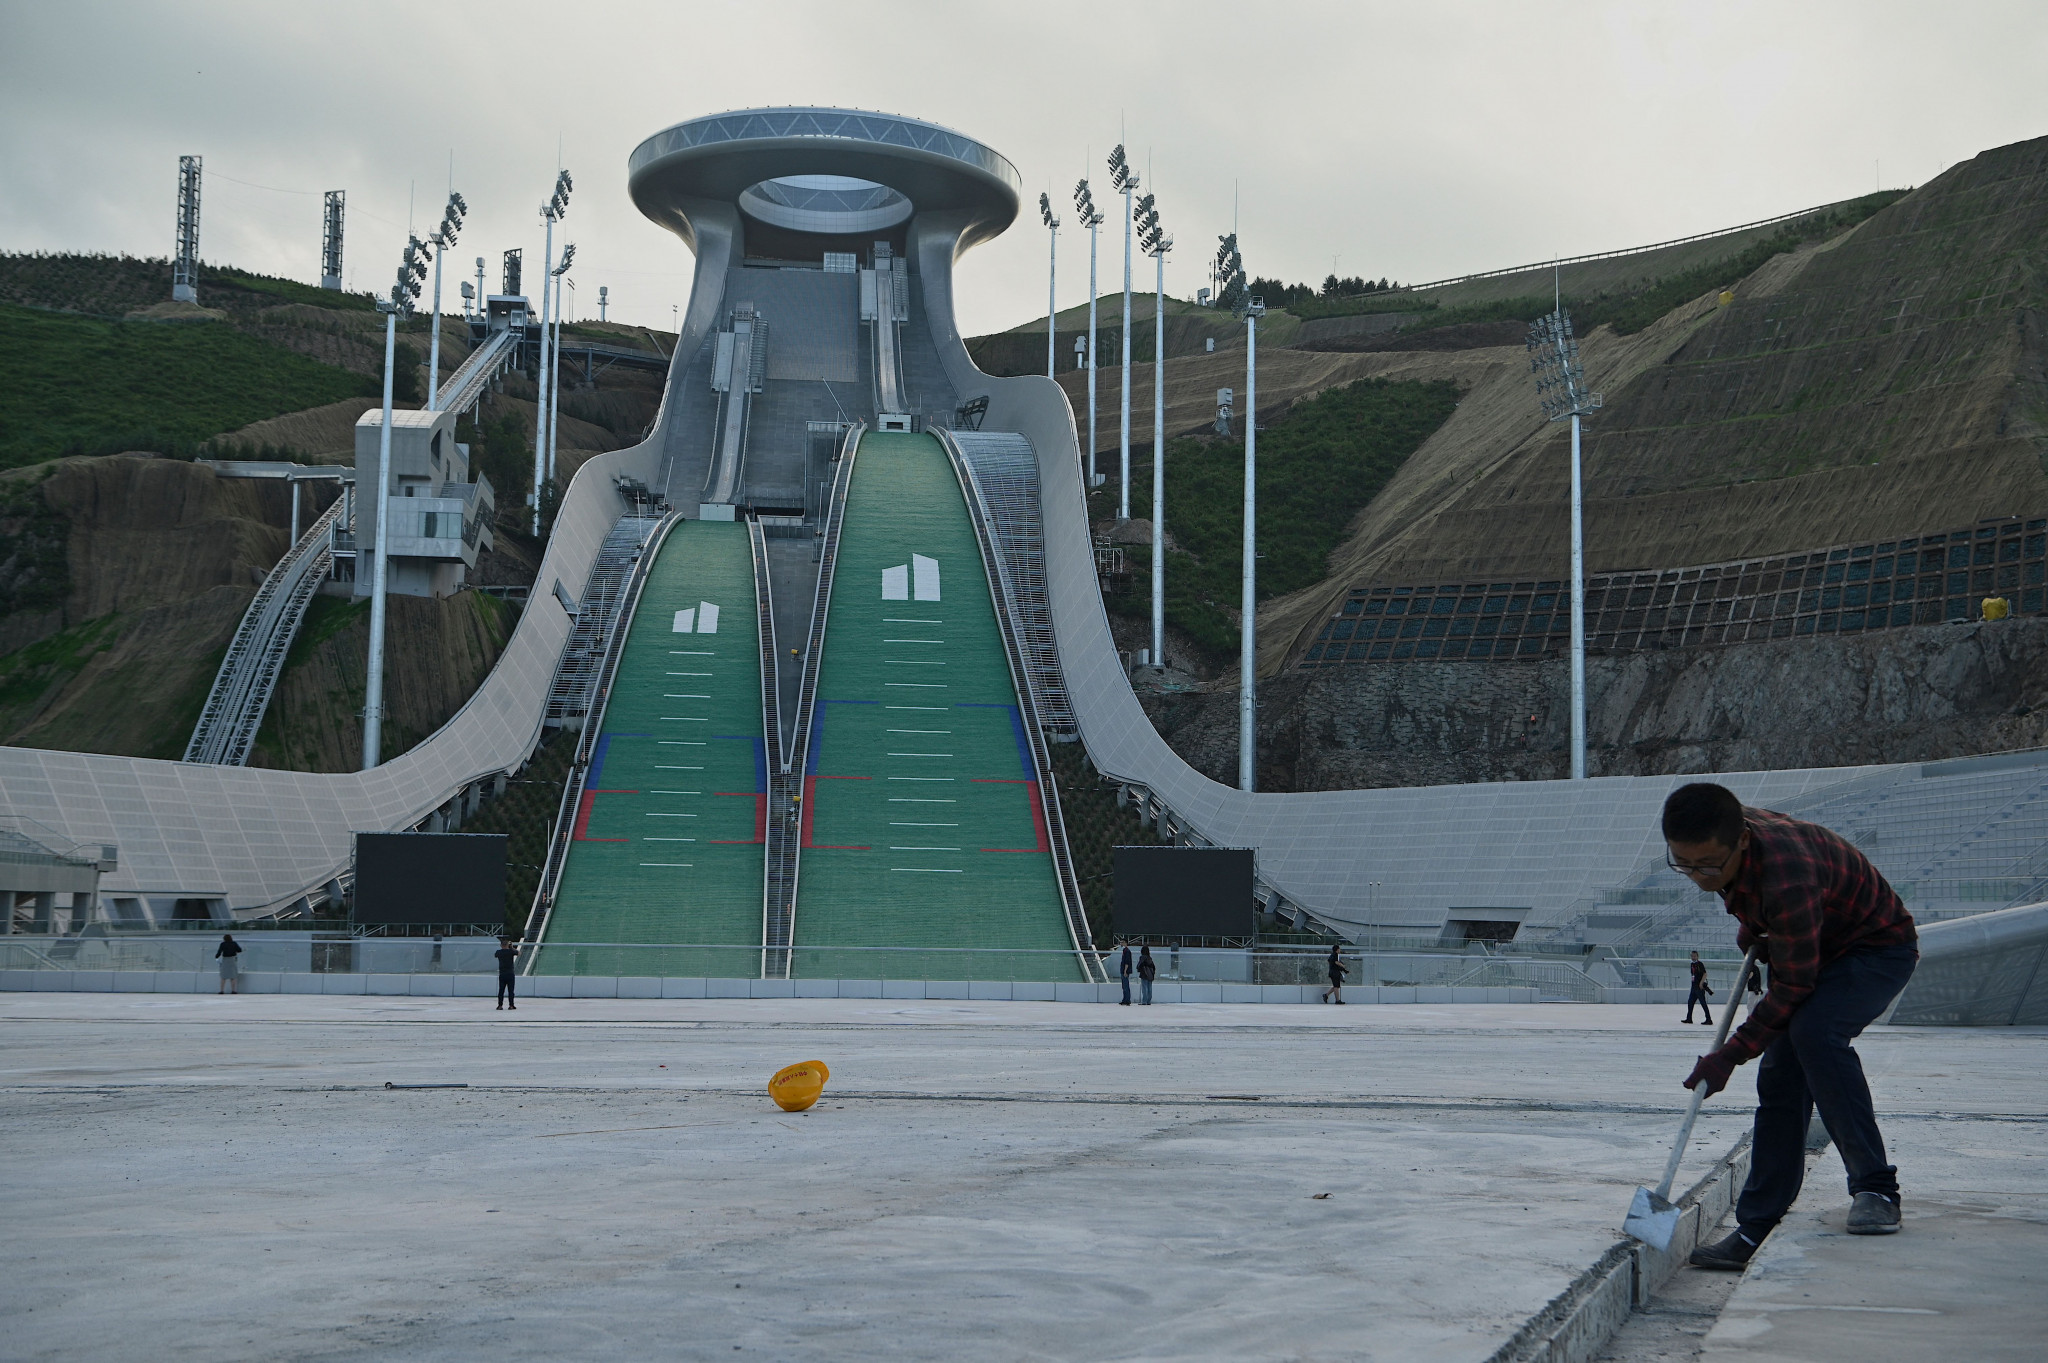 The National Ski Jumping Centre in Zhangjiakou will host the world's best ski jumpers during the 2022 Winter Olympics ©Getty Images